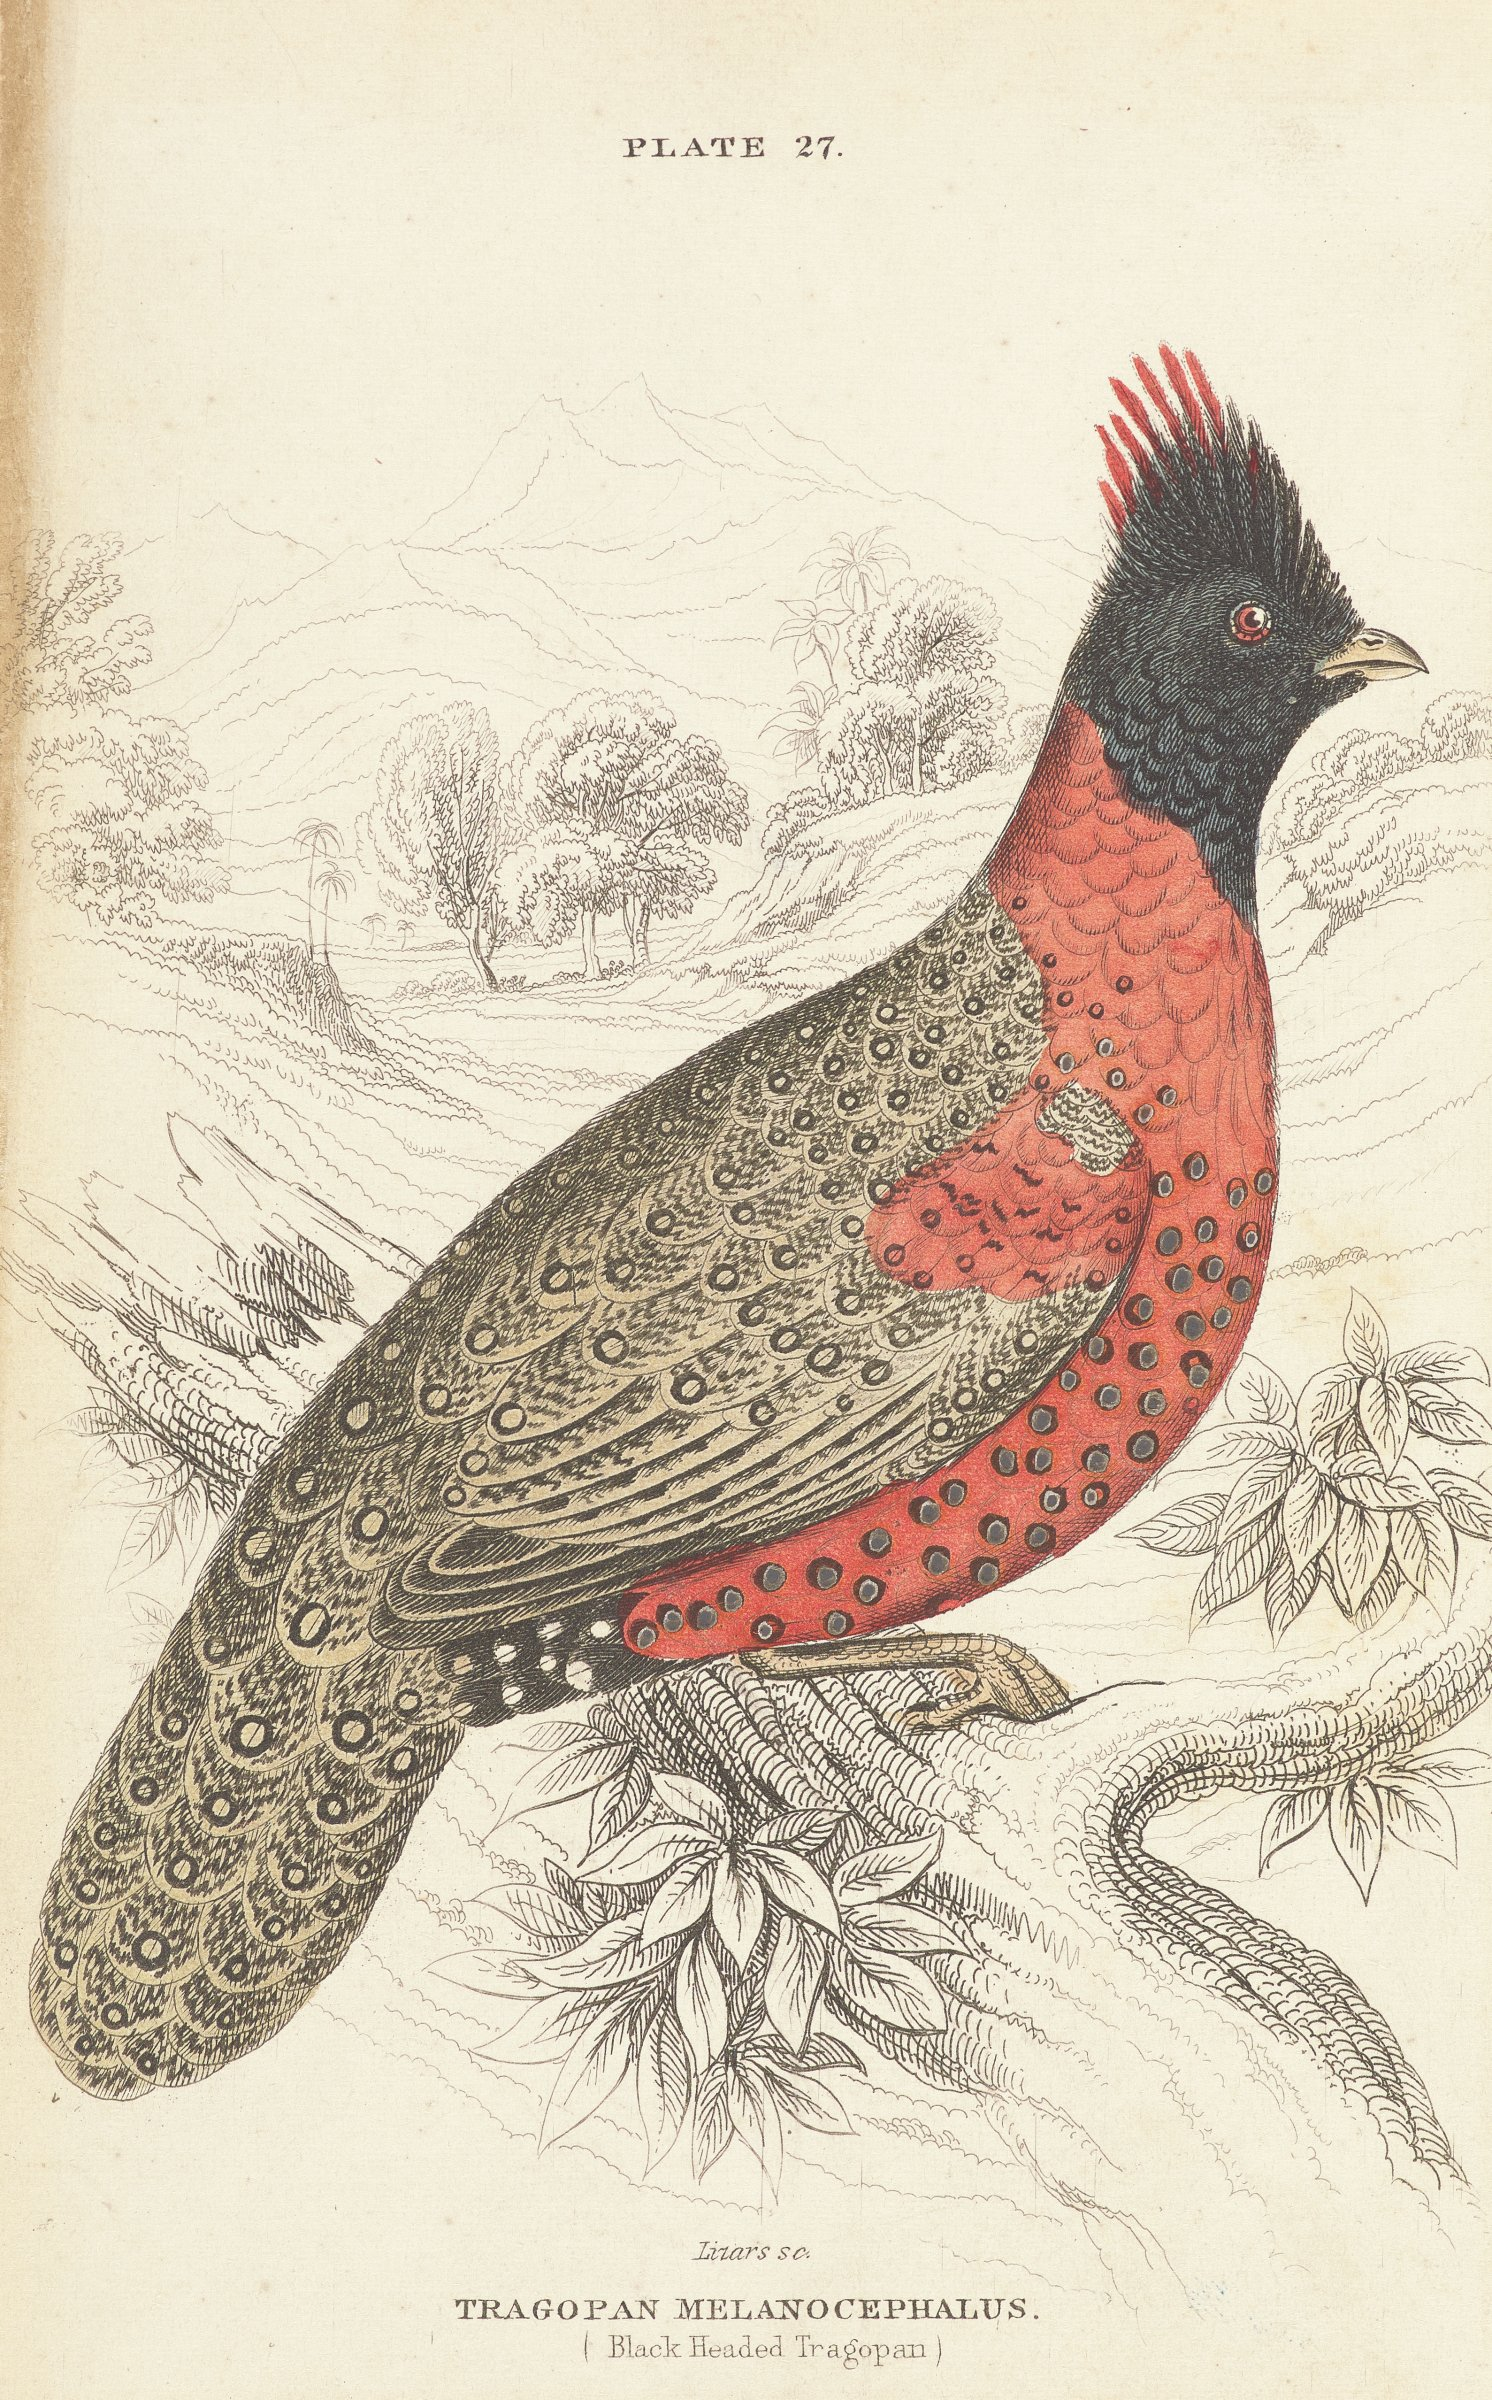 A bird is seen in profile standing on a tree limb with trees and hills in the background. The bird is red, black, and grey with circlular designs on its feathers.